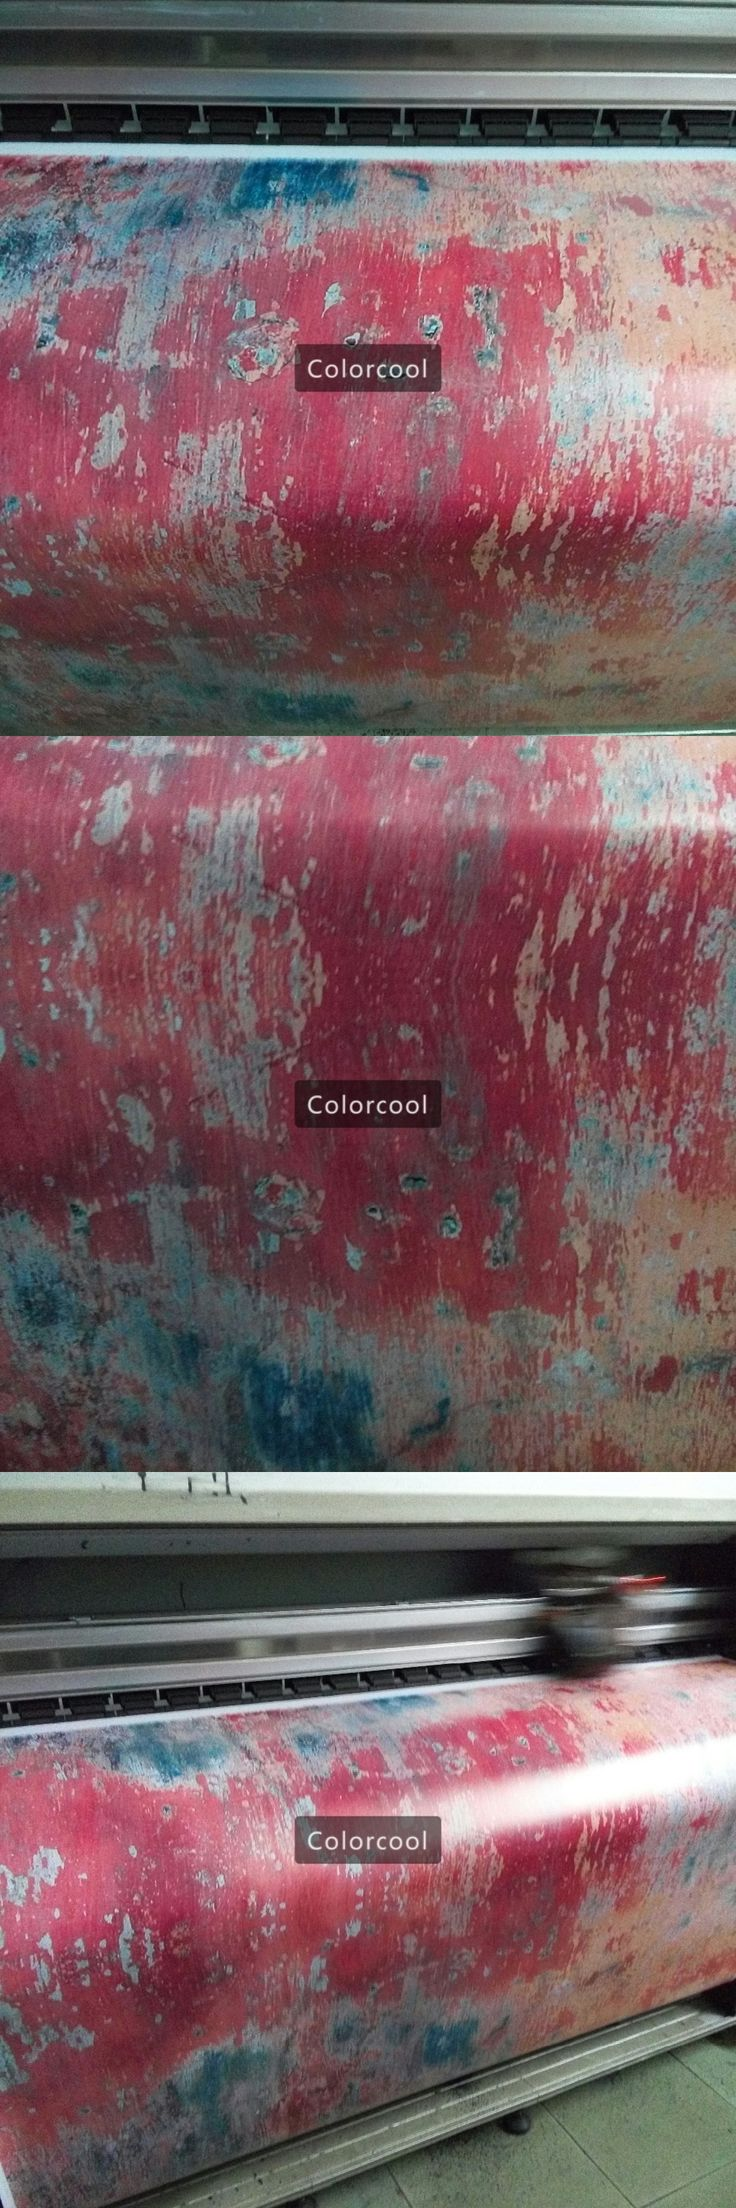 Iron Rust Vinyl Wrap Film For Car Wrap Rust style Wrapping Colored Car Full Body Wrap Vinyl Sticker Bomb Design